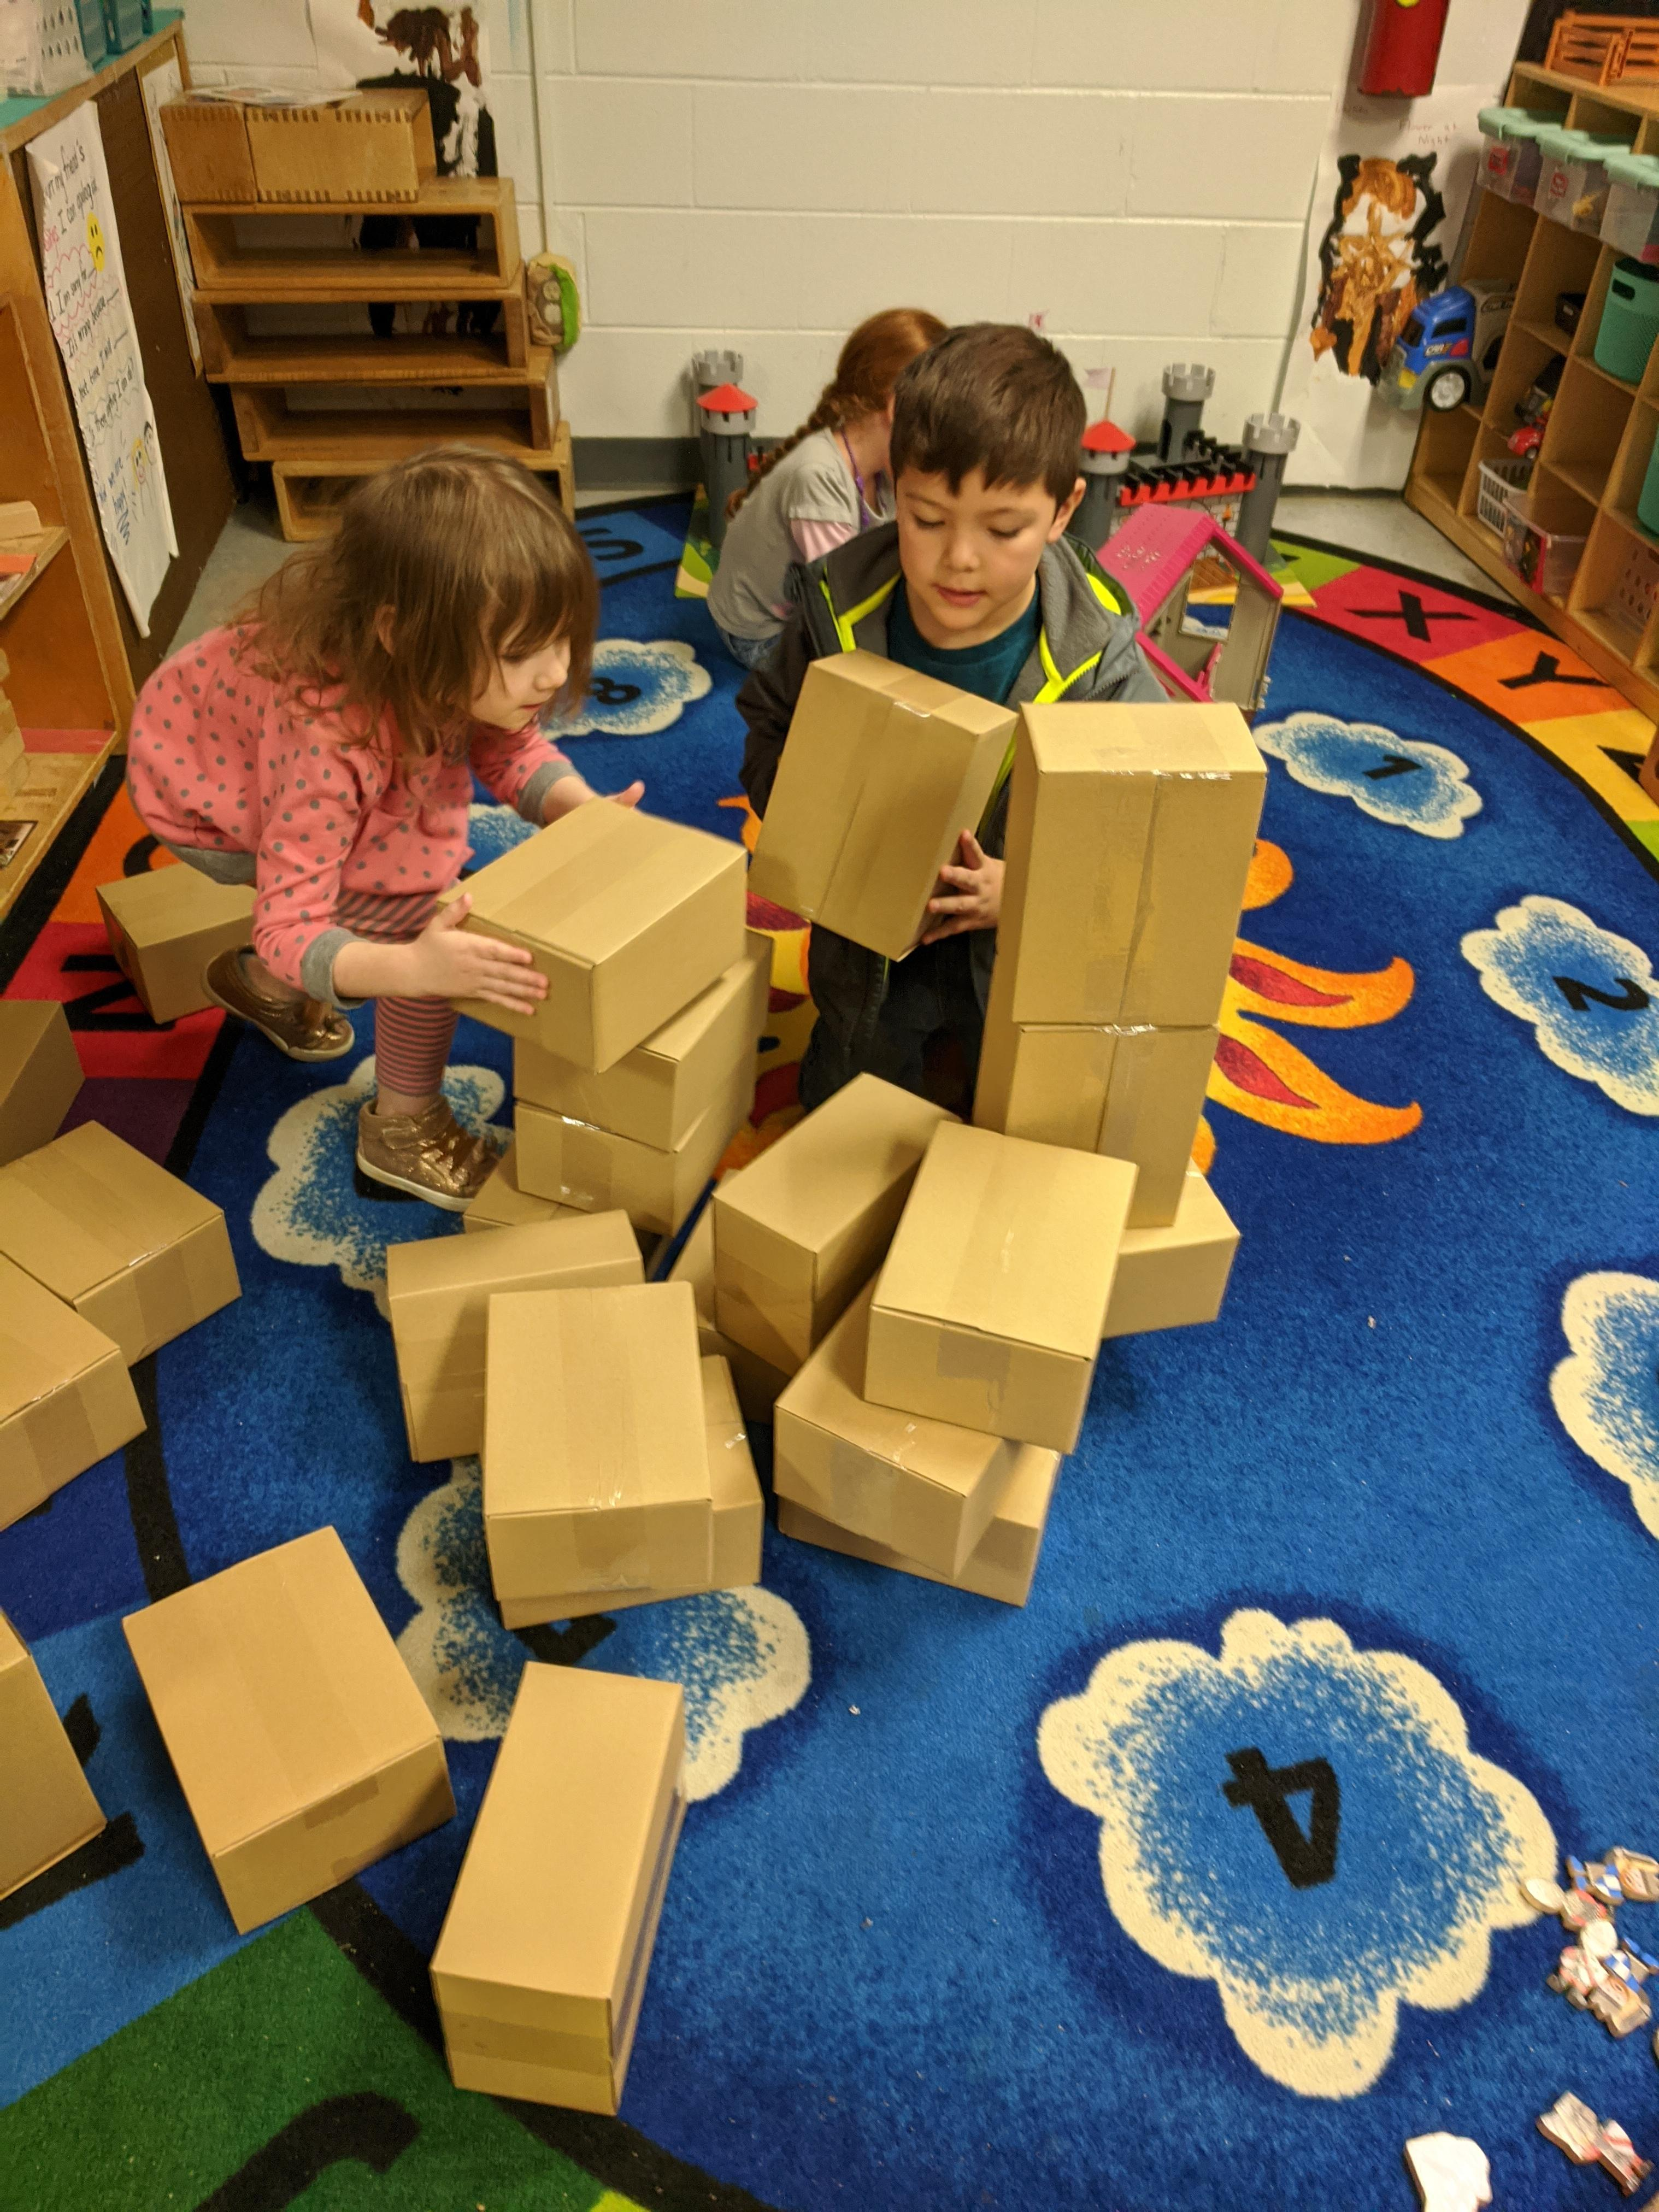 Building with Boxes